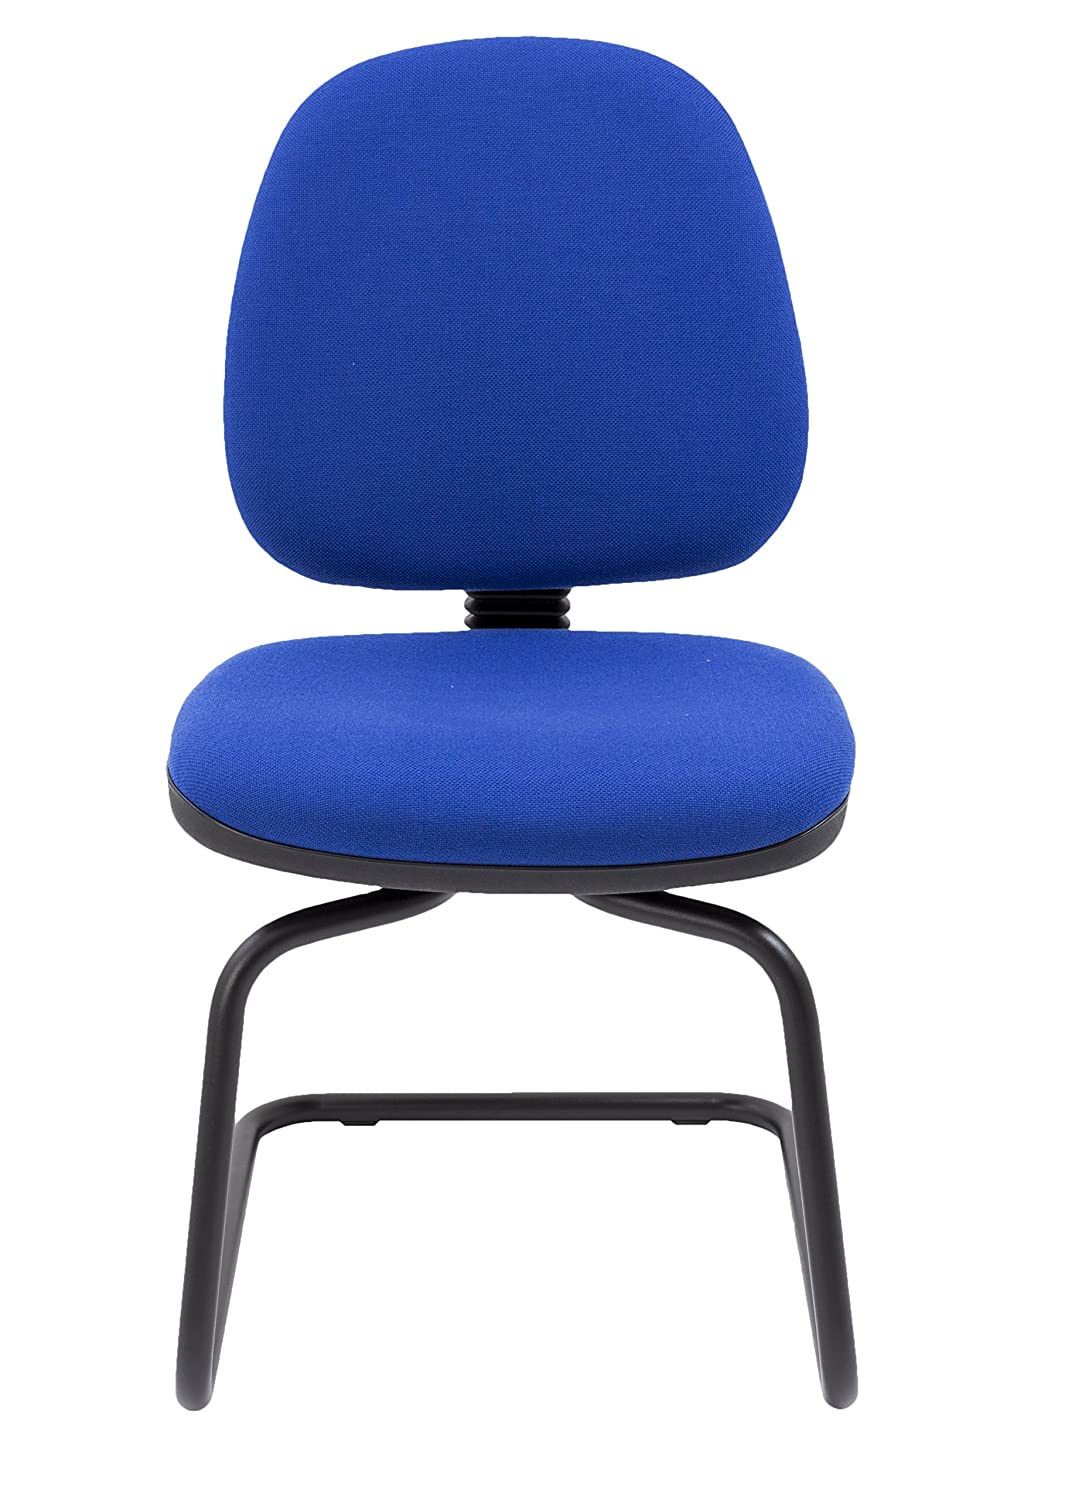 Office Hippo Mid Back Visitor Chair, Fabric - Royal Blue TC Group OHS0086RB